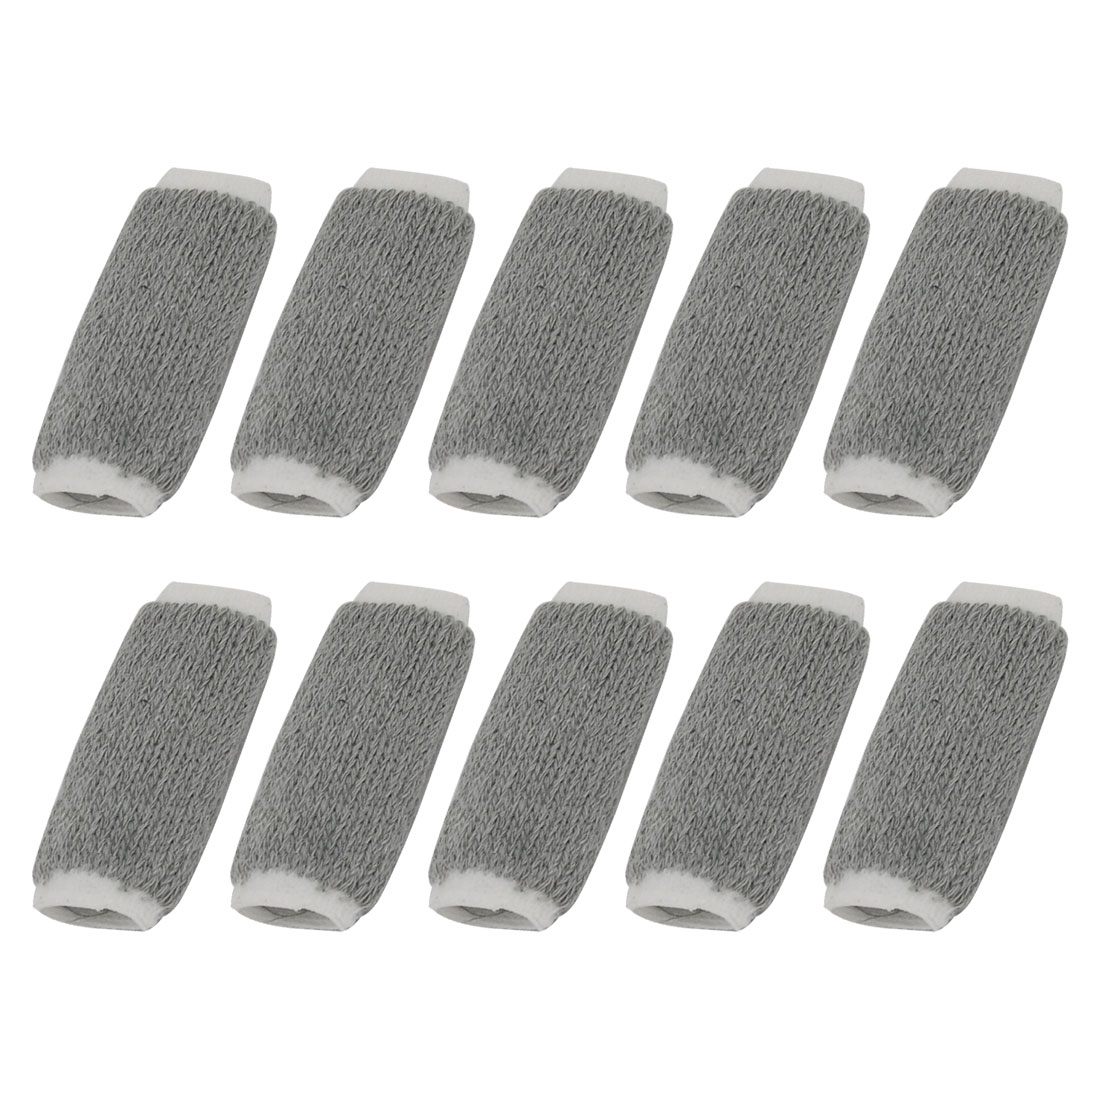 Sports Finger Sleeve Protection Protector Gray 10PCS